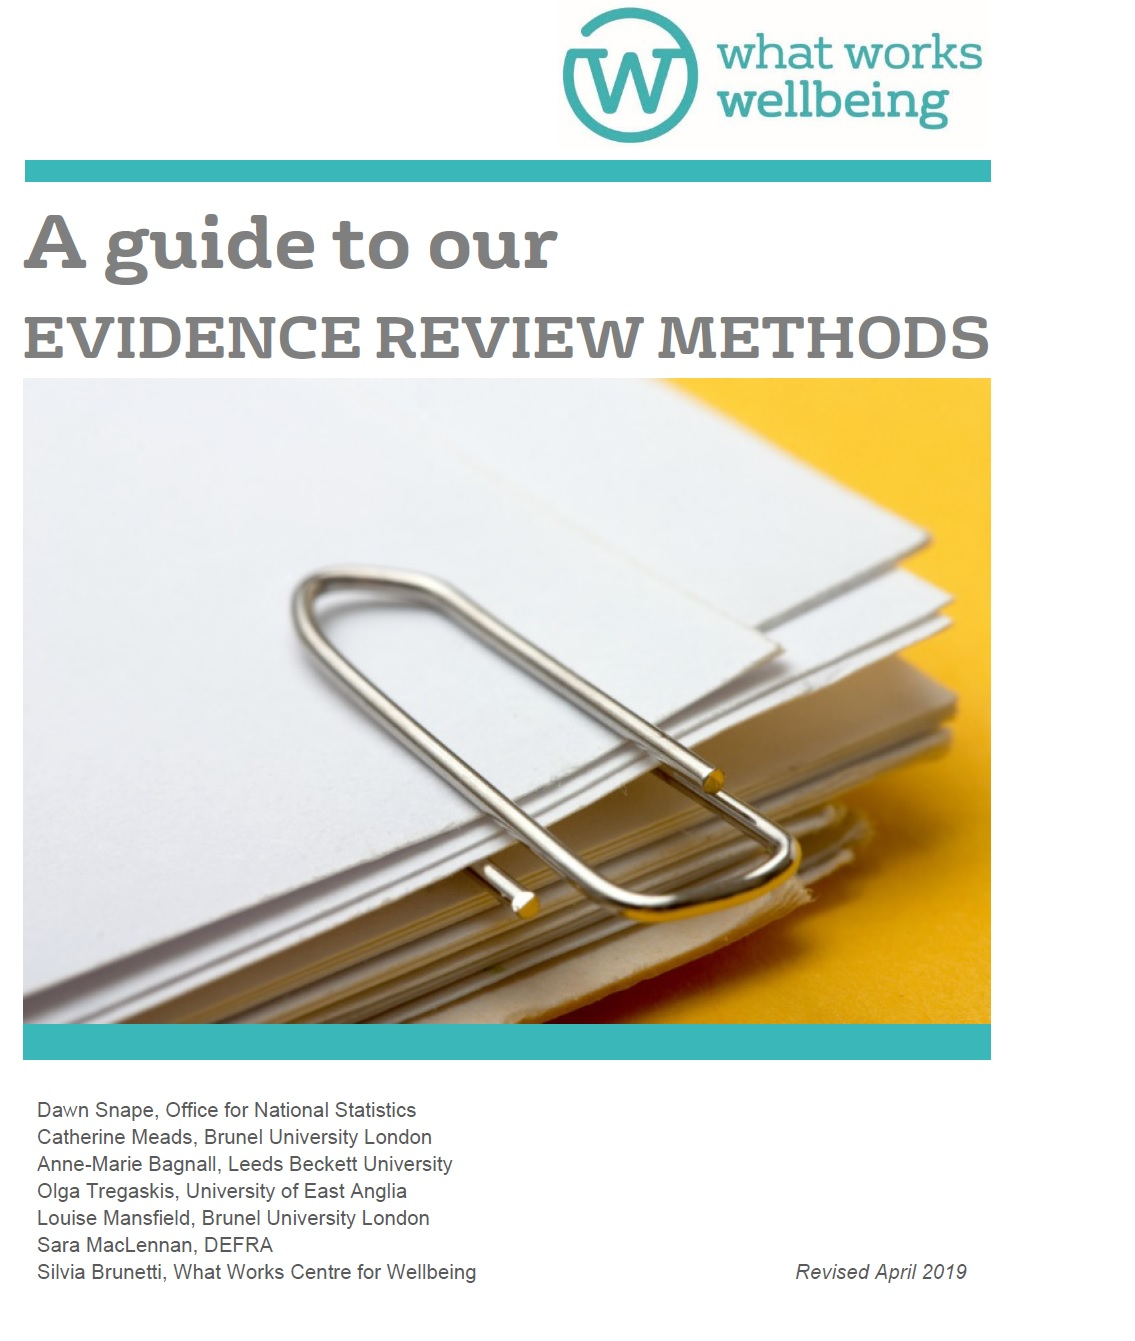 Updated: A Guide to our Evidence Review Methods